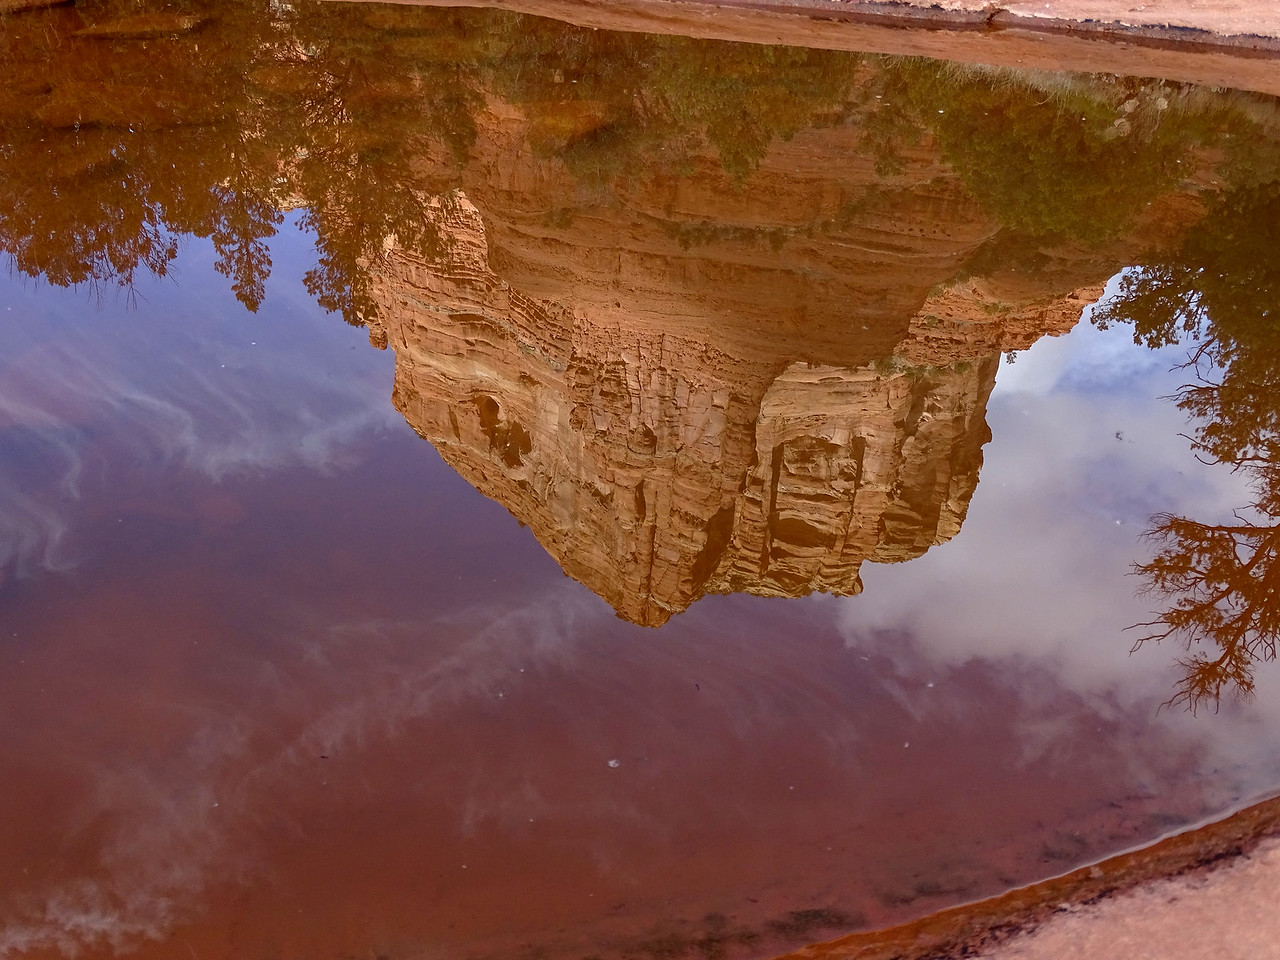 Arroyo puddle reflecting Court House Rock